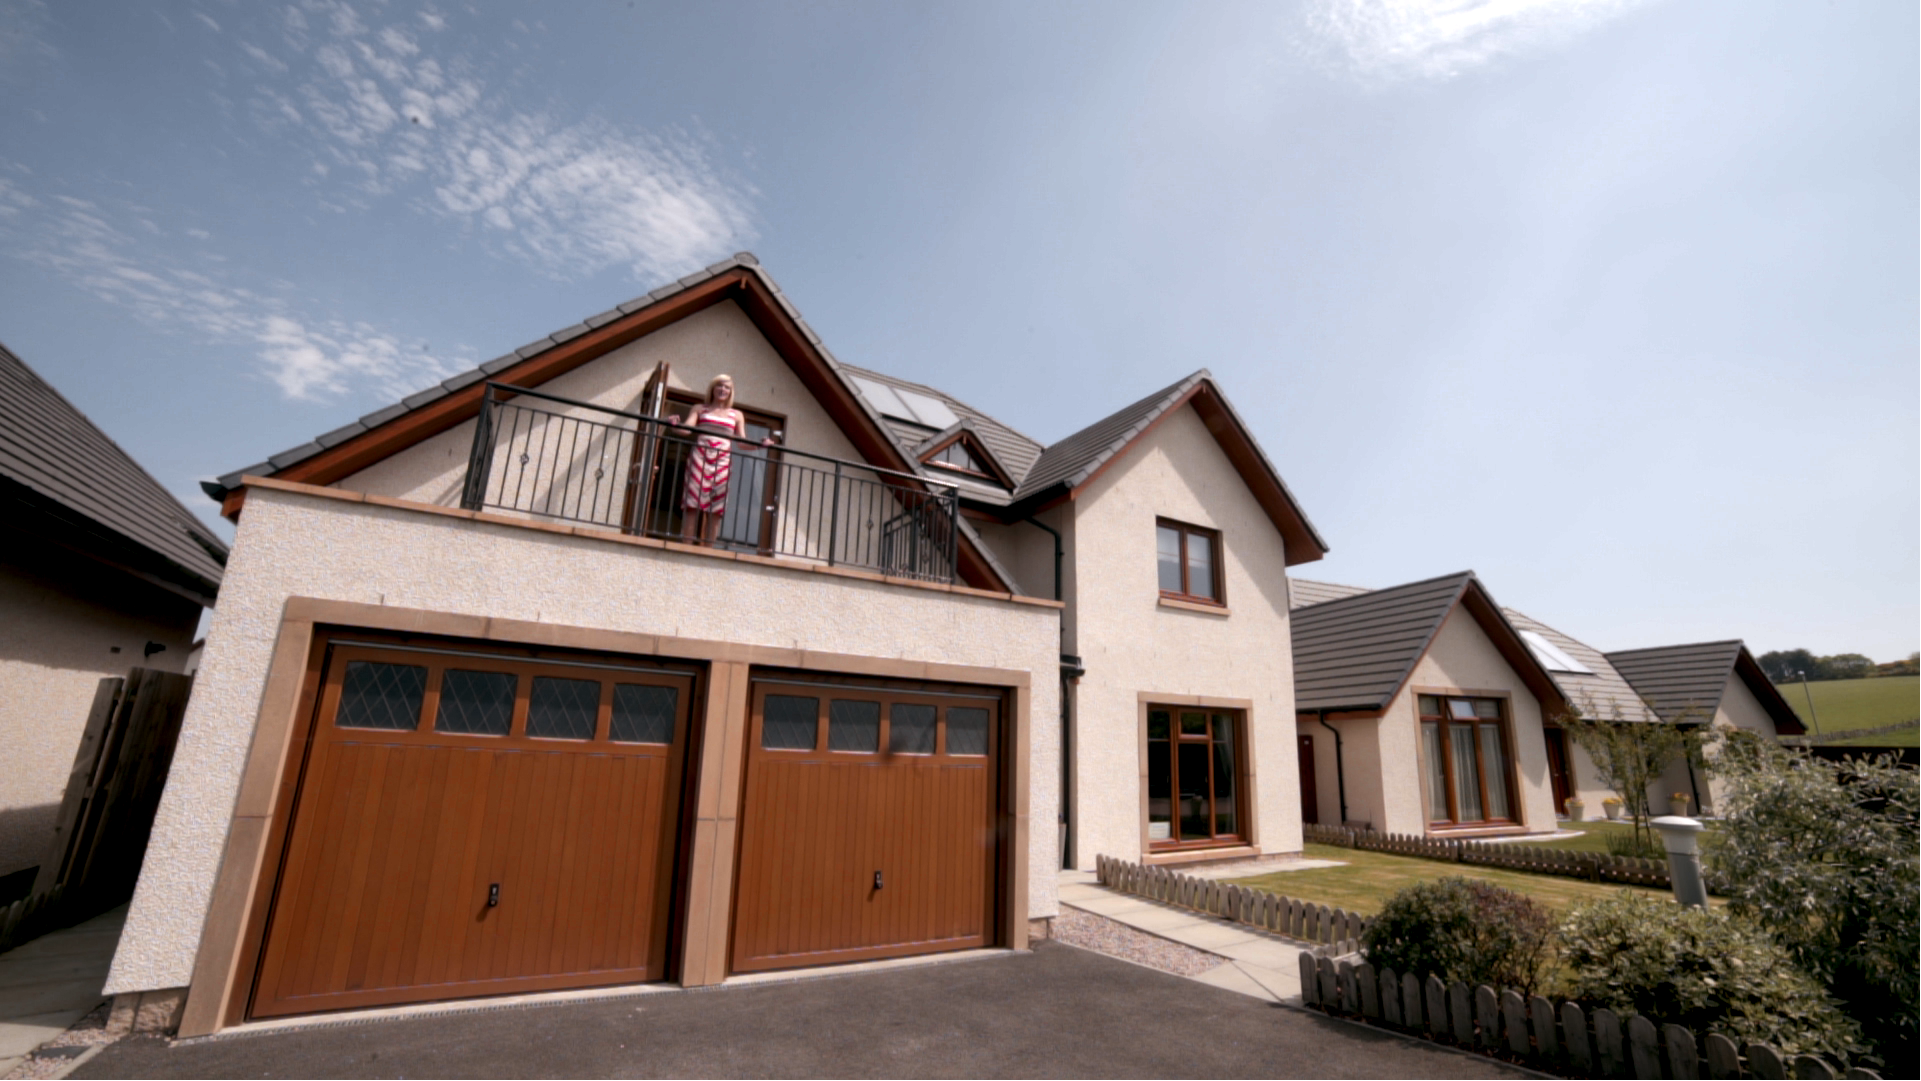 Contact Deveron Homes for more information on The Craigearn